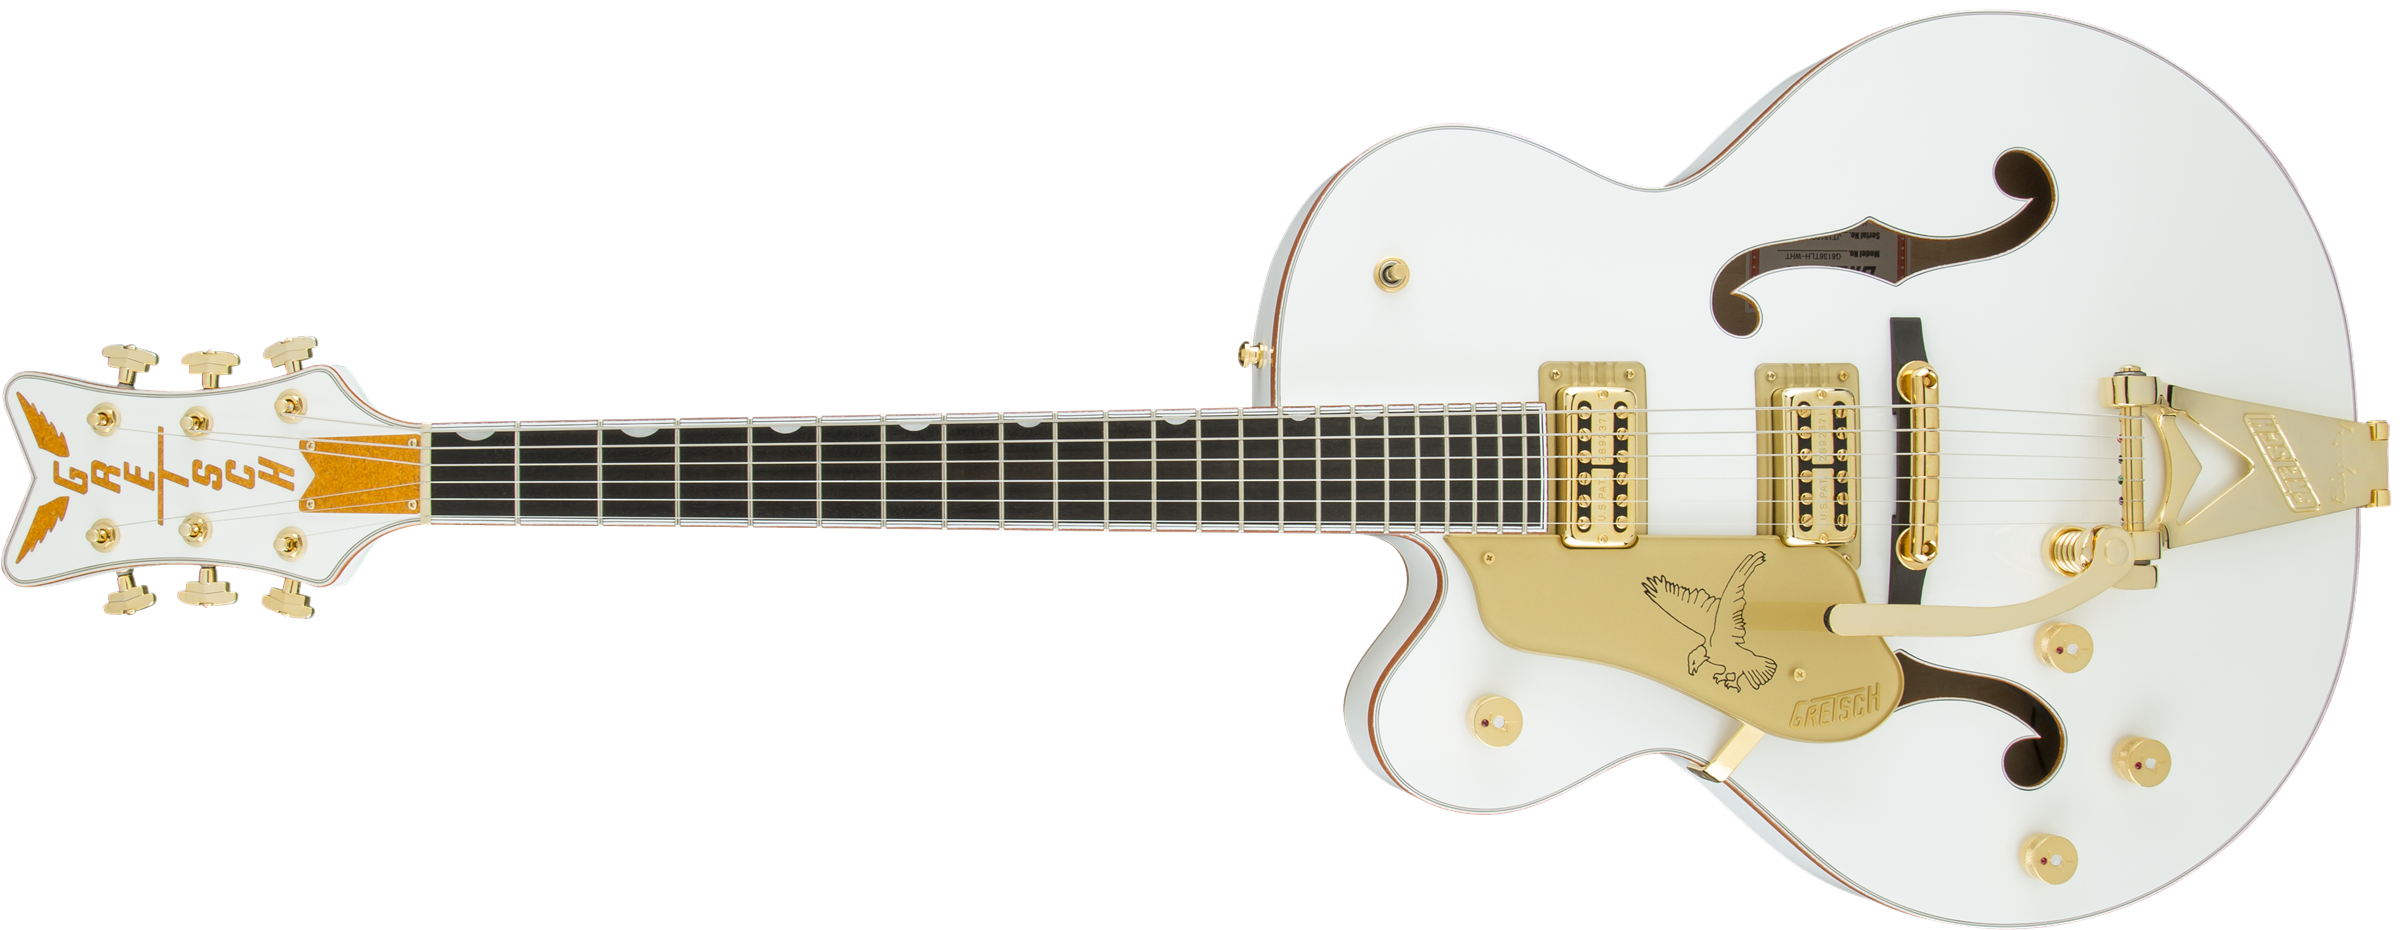 GRETSCH-G6136TLH-WHT-Players-Edition-Falcon-with-Bigsby-Left-Handed-FilterTron-Pickups-White-sku-571001297